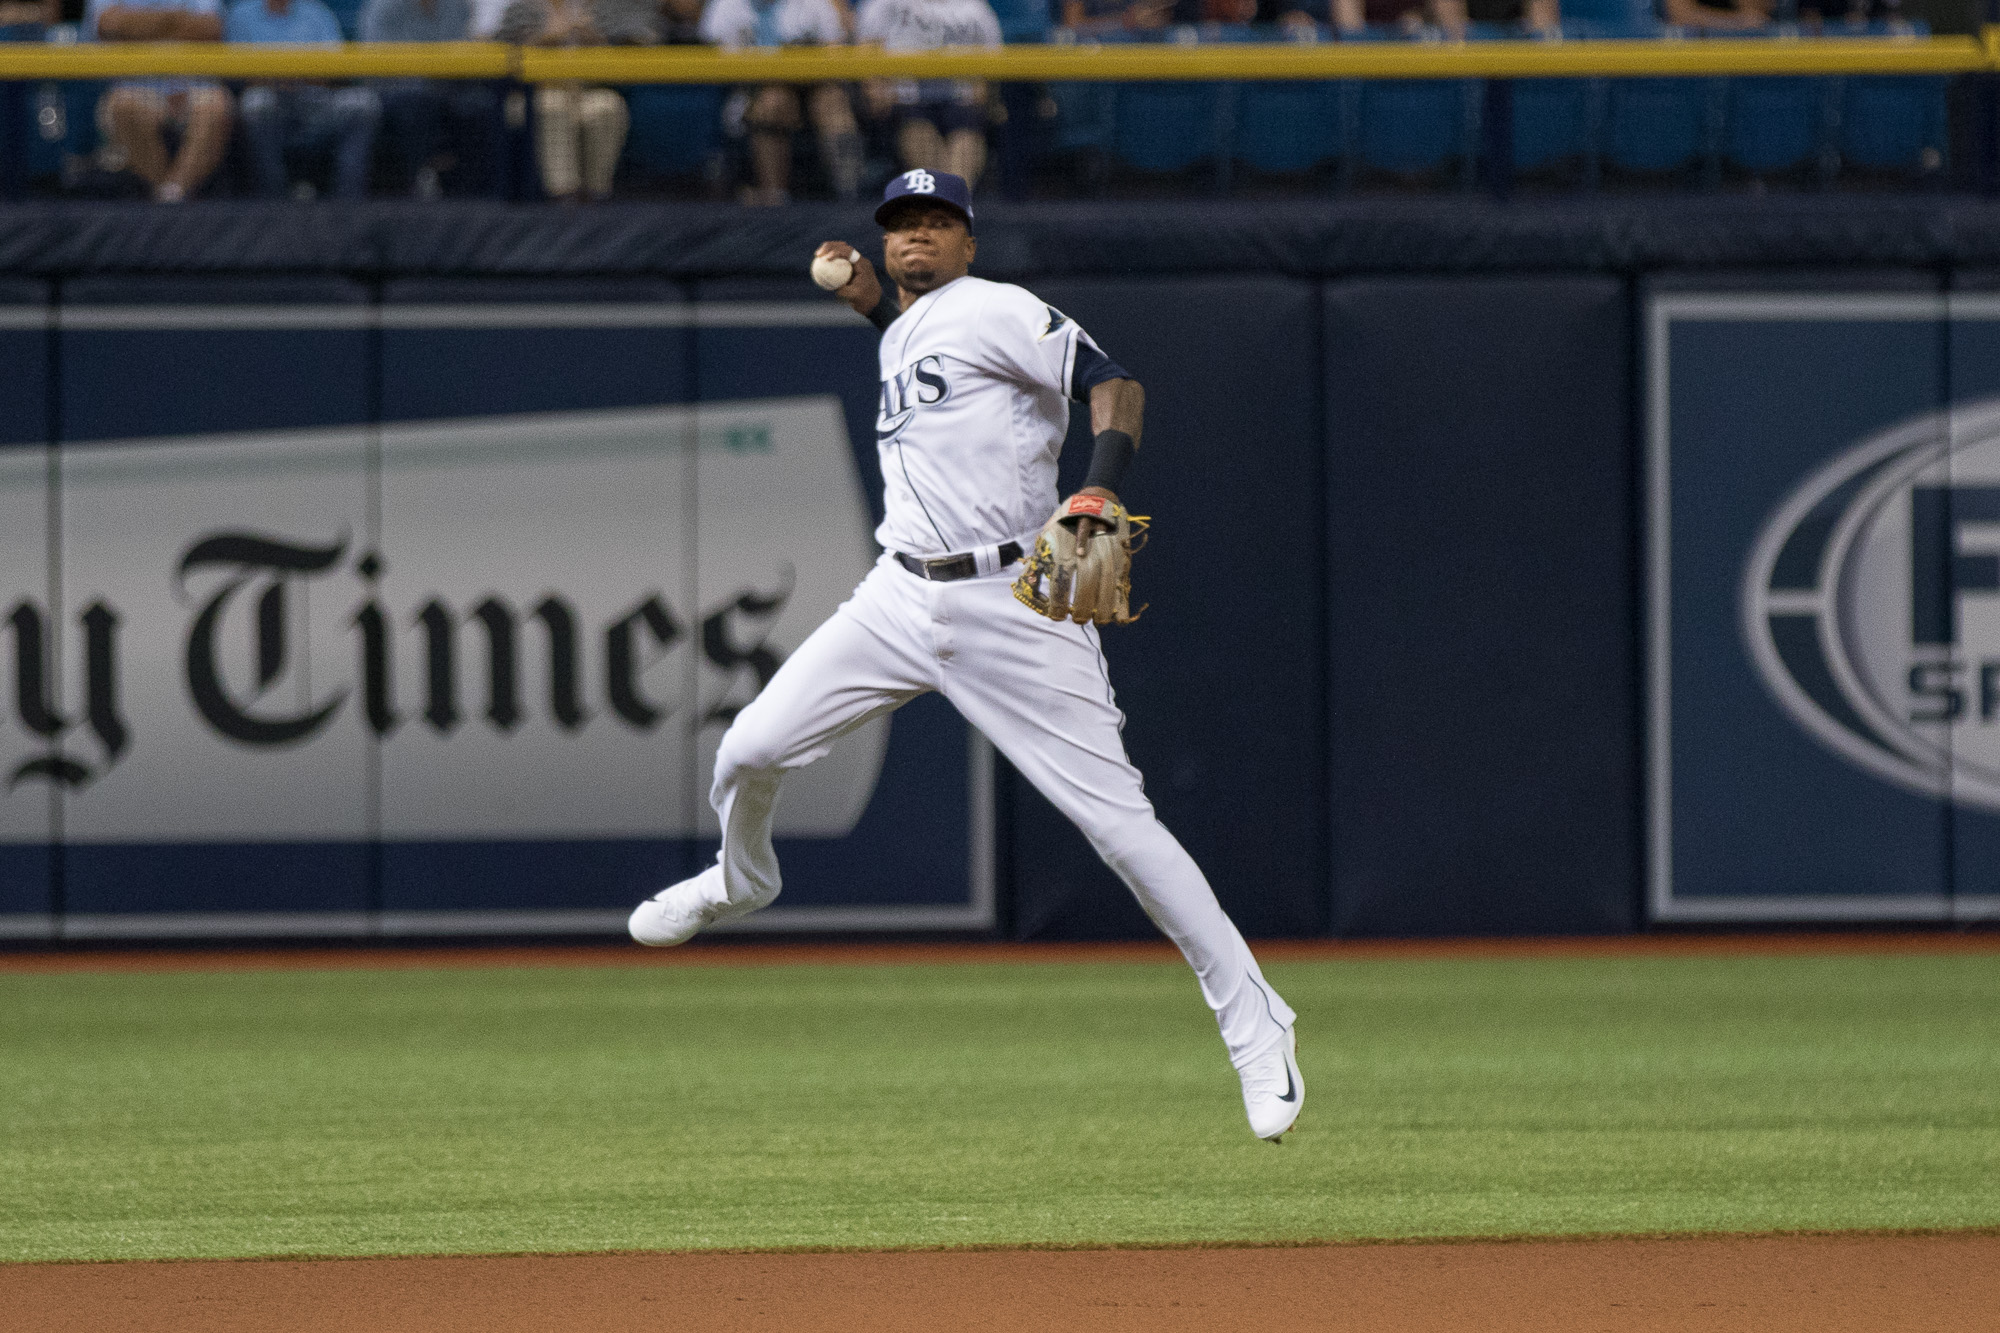 Tim Beckham had the big hit to lead the Rays../STEVEN MUNCIE